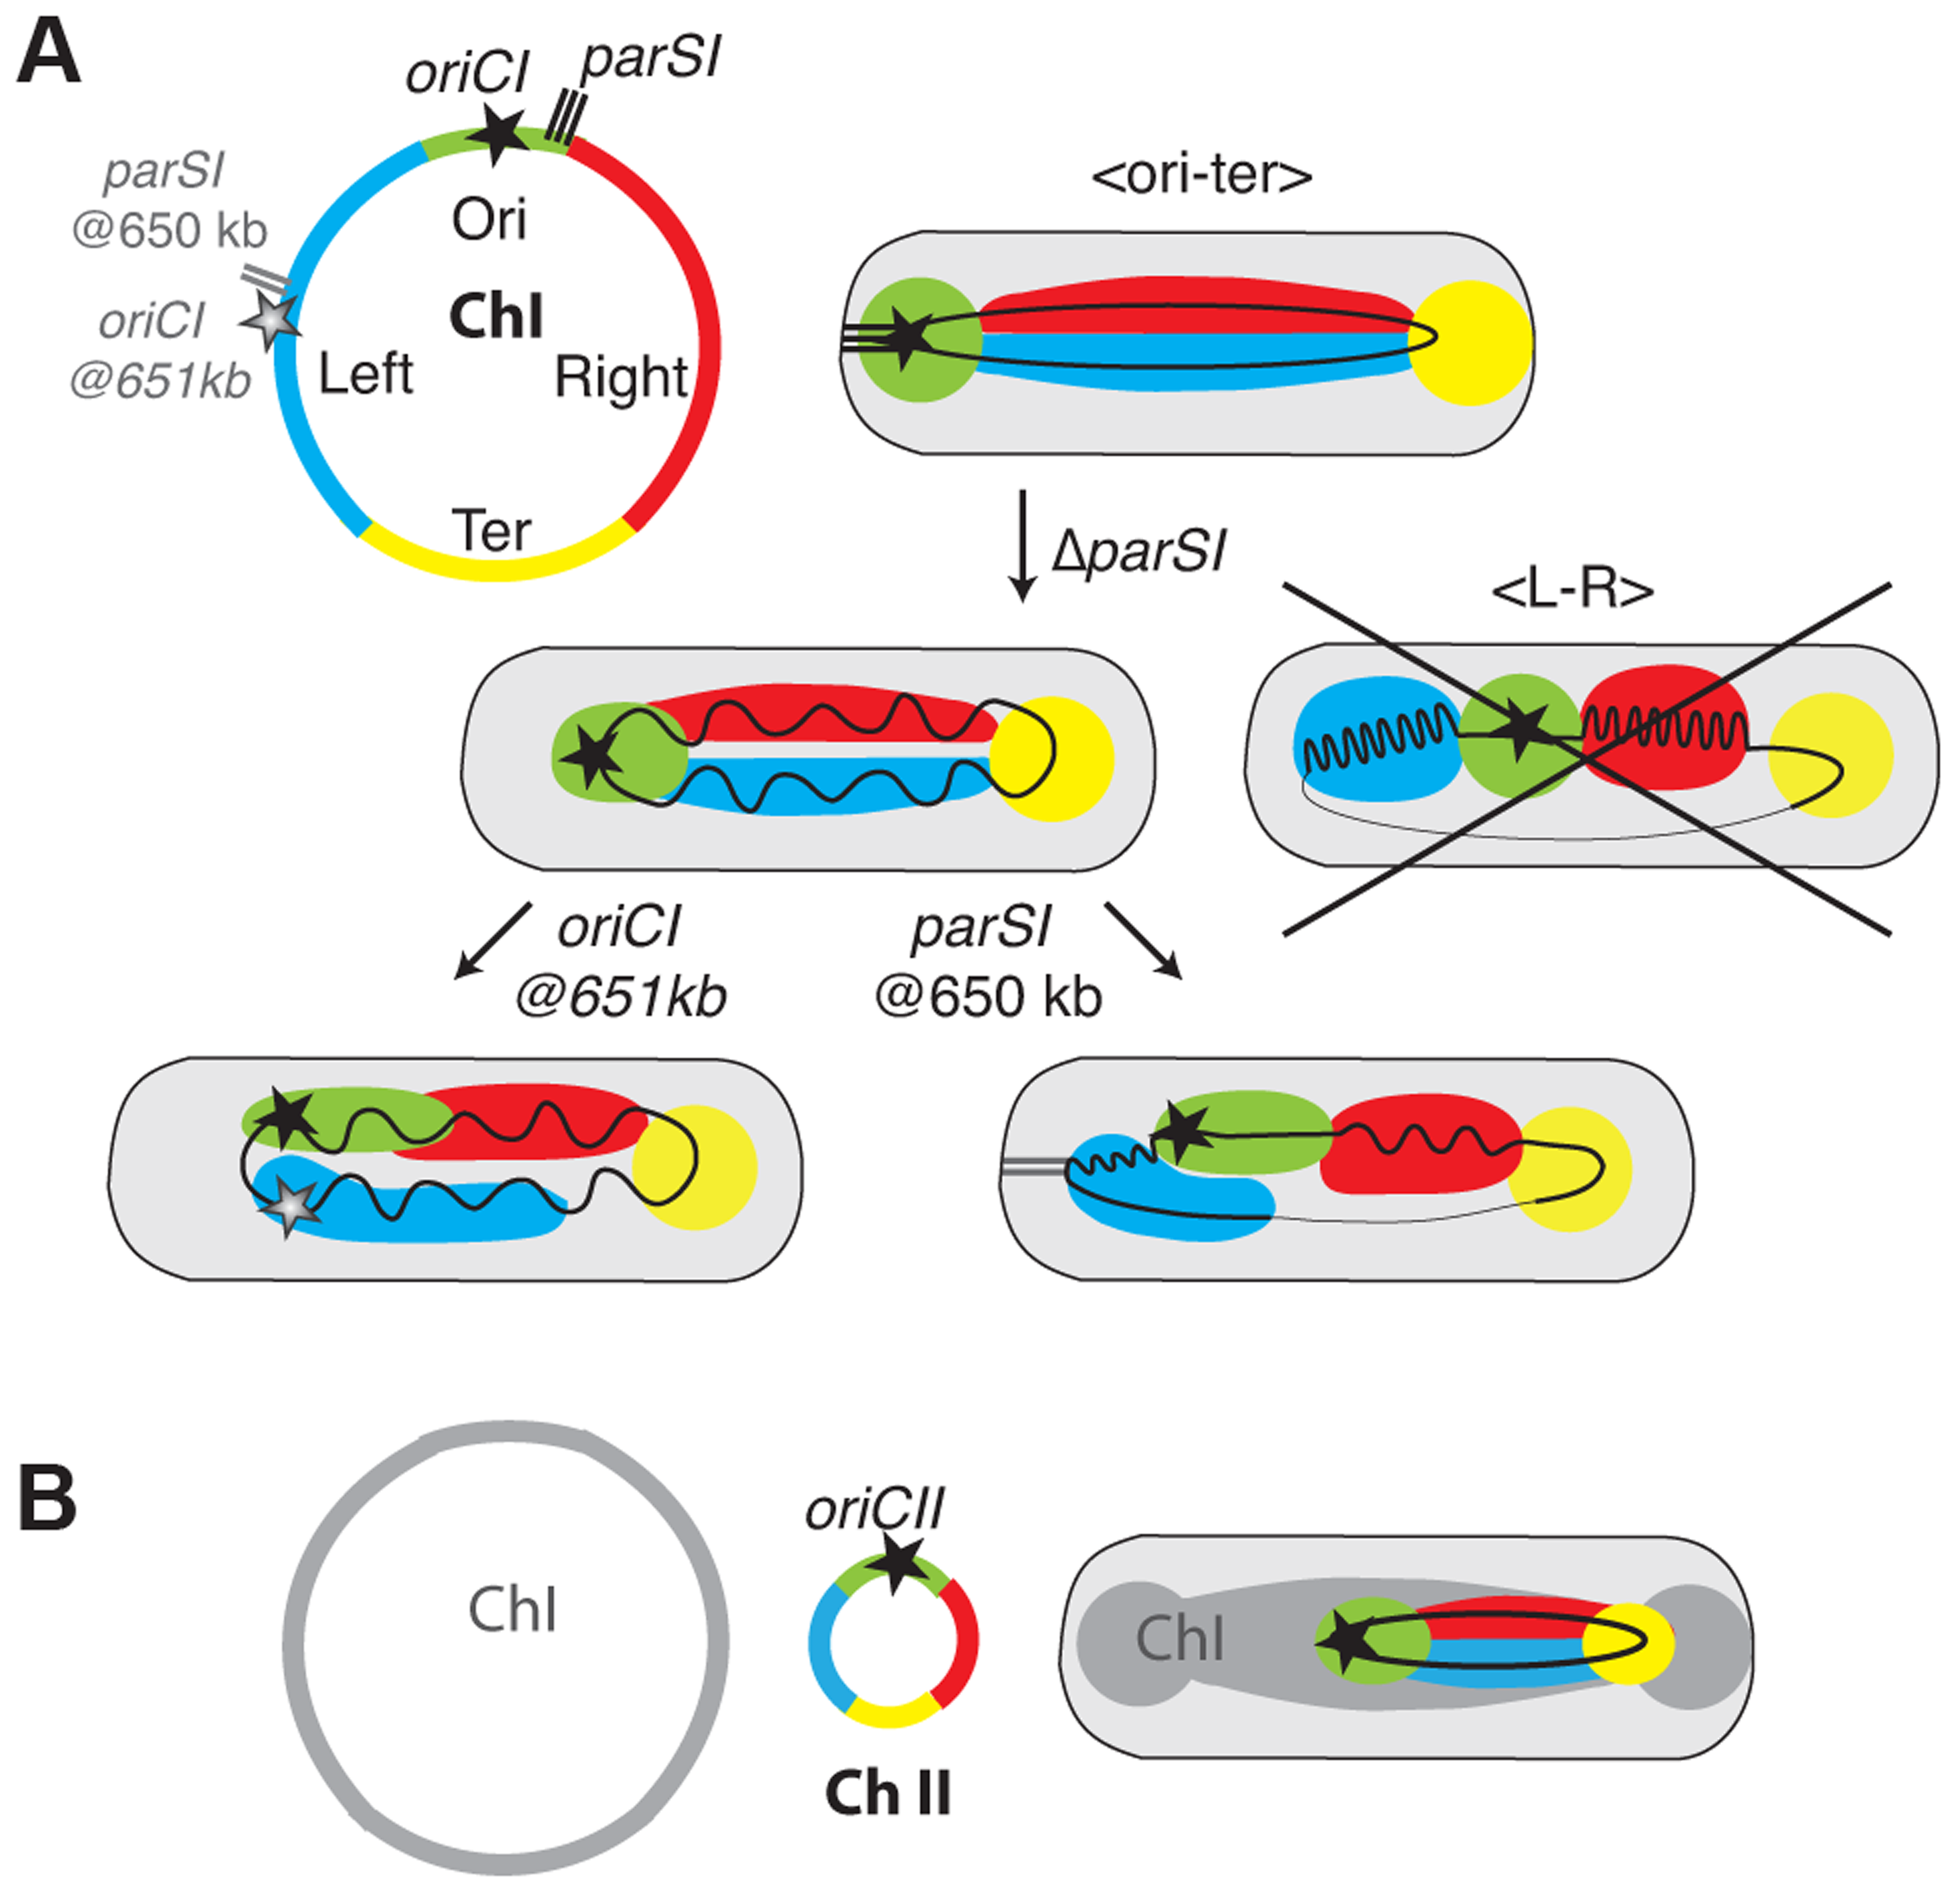 Models of chromosome I and II organisation and reorganisations by <i>parS1</i> and <i>oriC1</i> actions.